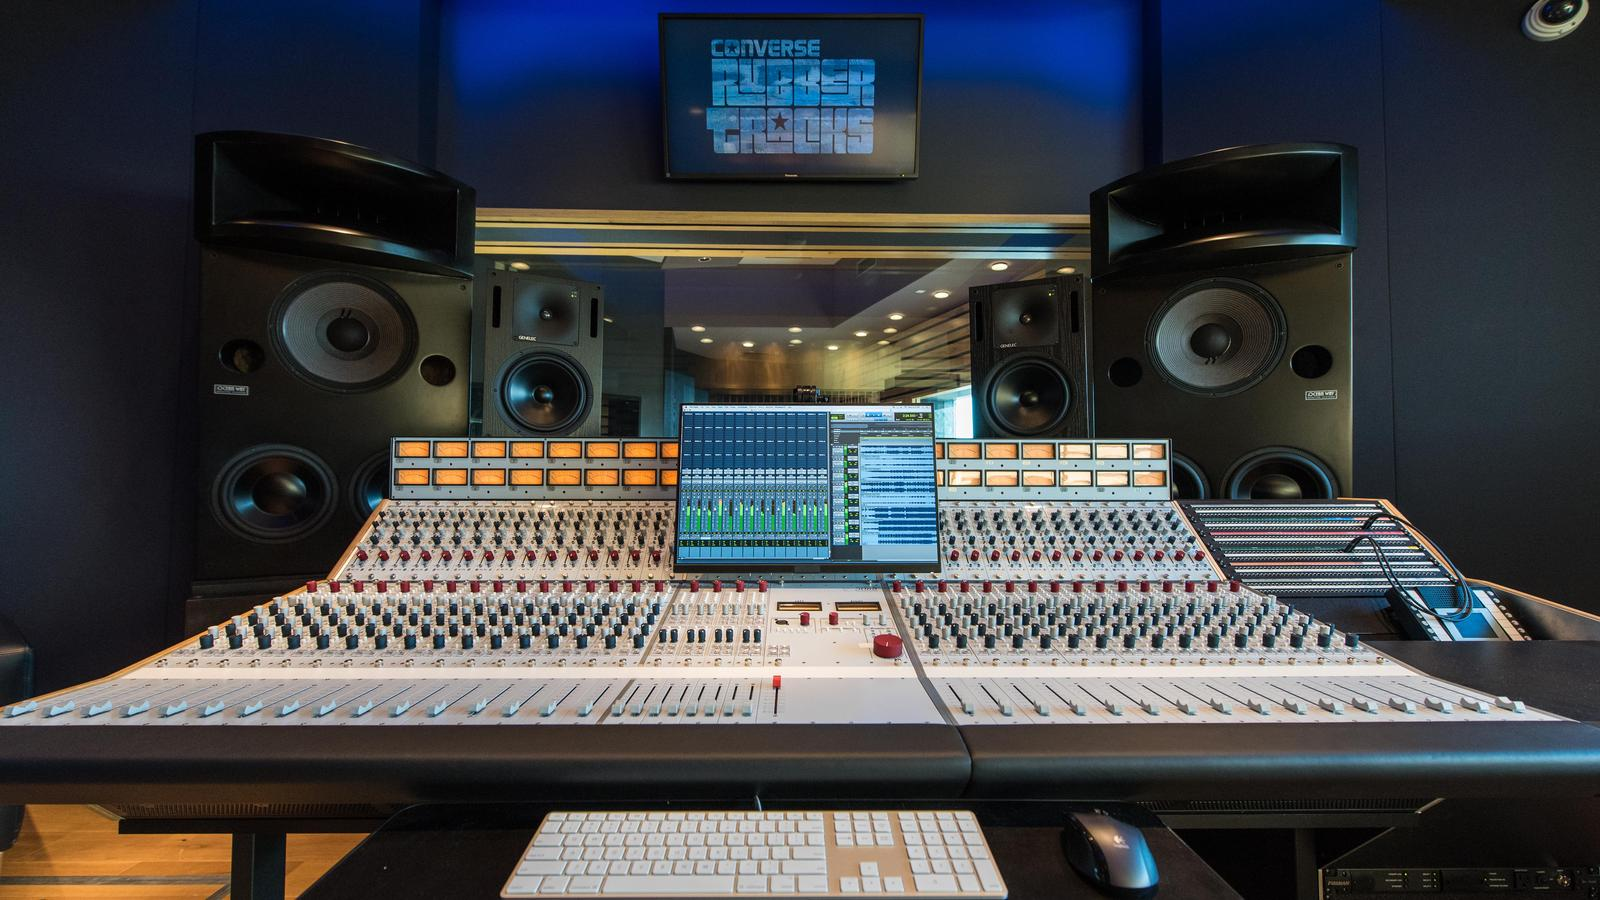 Nike News - CONVERSE RUBBER TRACKS AMPLIFIES WITH NEW RECORDING ...